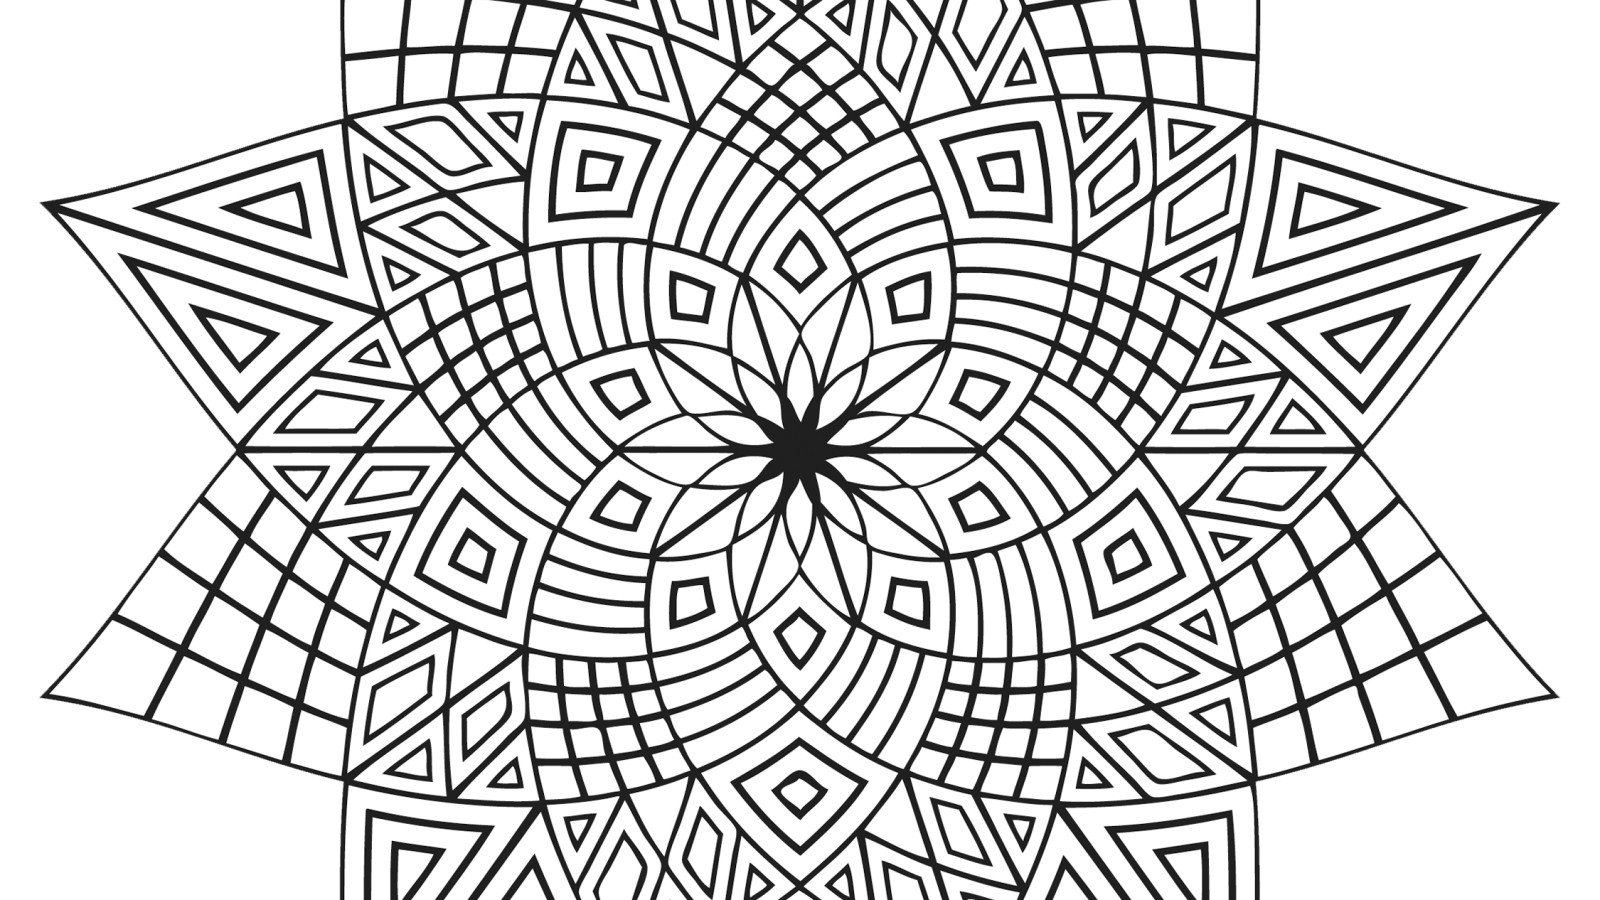 Fun Coloring Pages Online Archives Inside Fun Coloring Pages